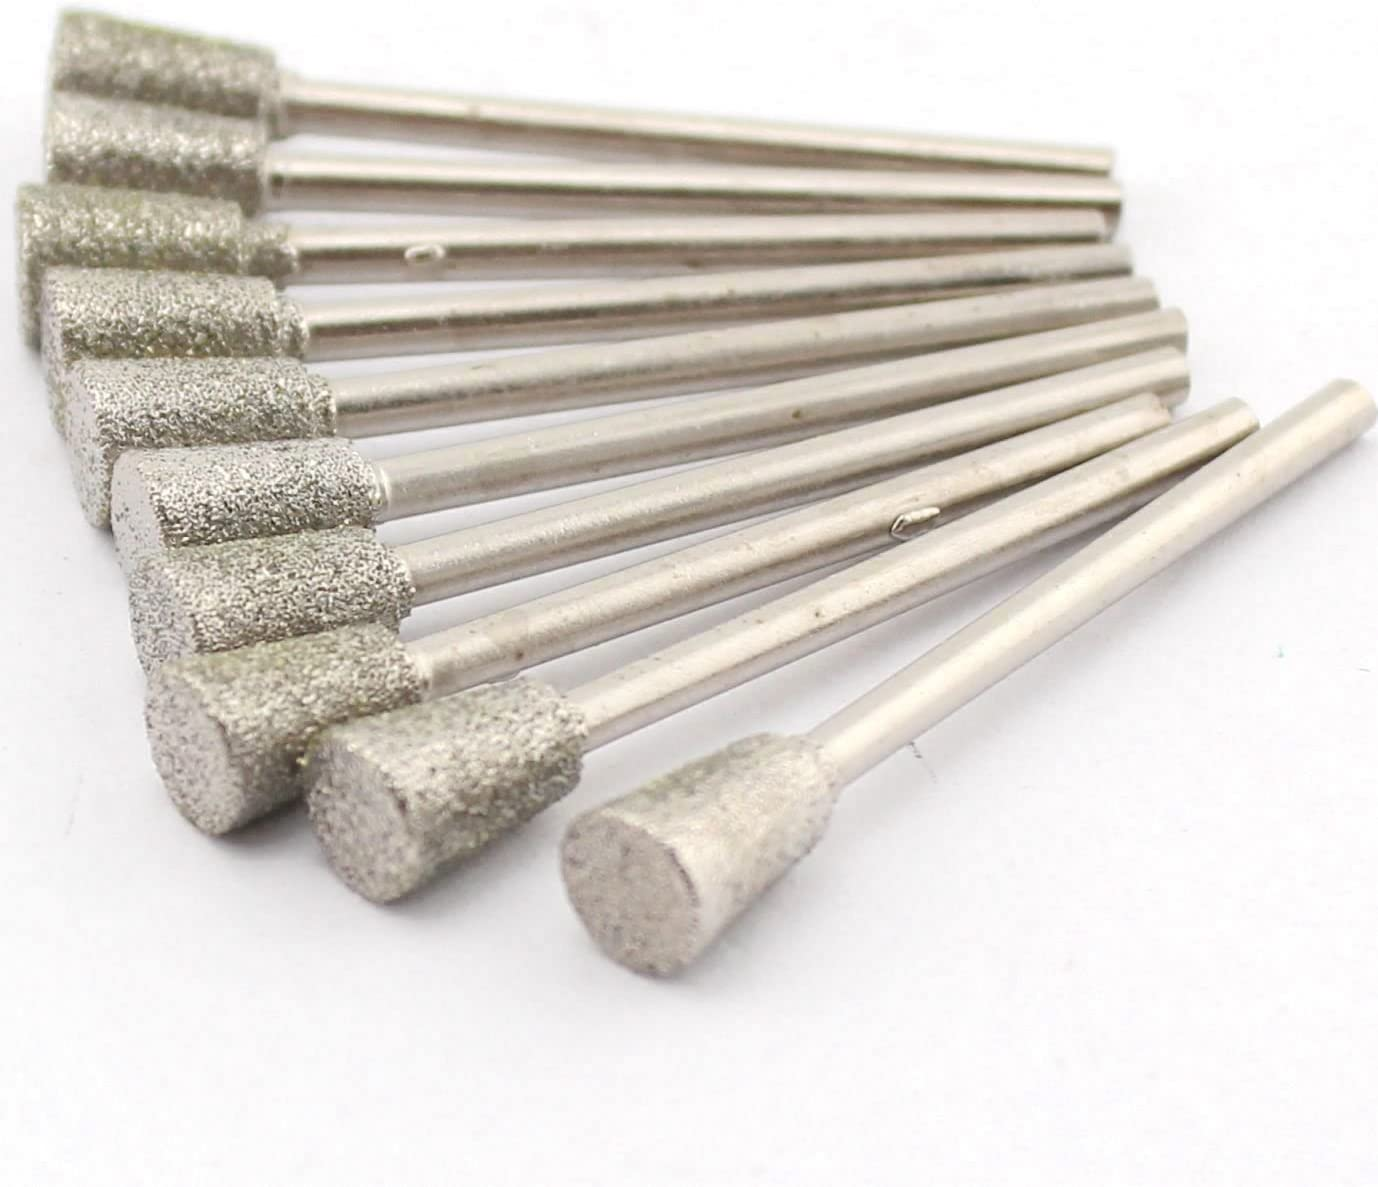 ILOVETOOL Diamond Inverted Conical Burrs 12mm Cone Grinding Head Tools for Stone